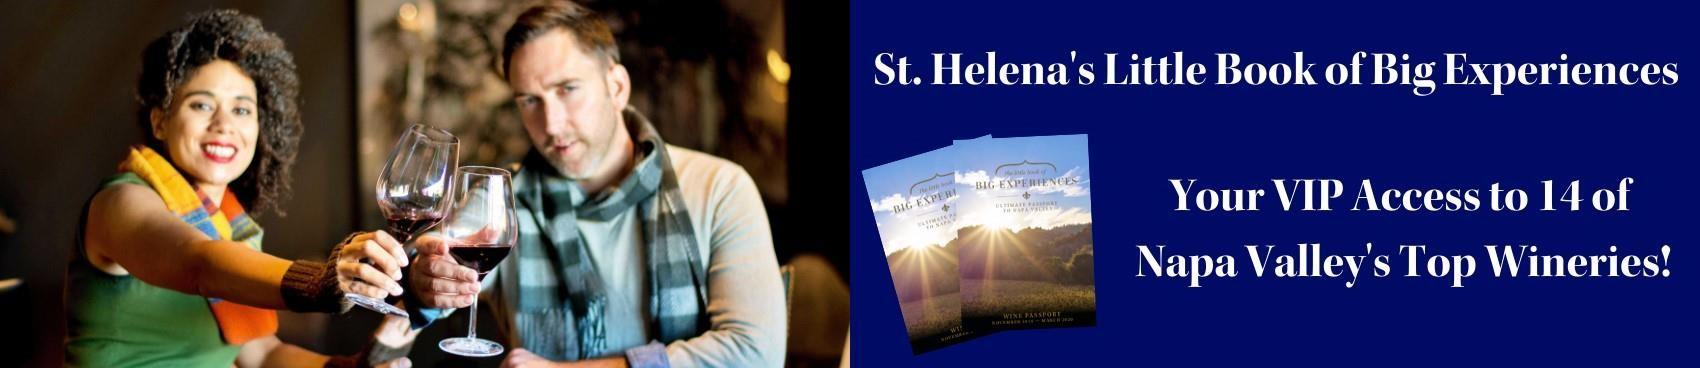 2020-2021 St. Helena's Little Book of Big Experiences